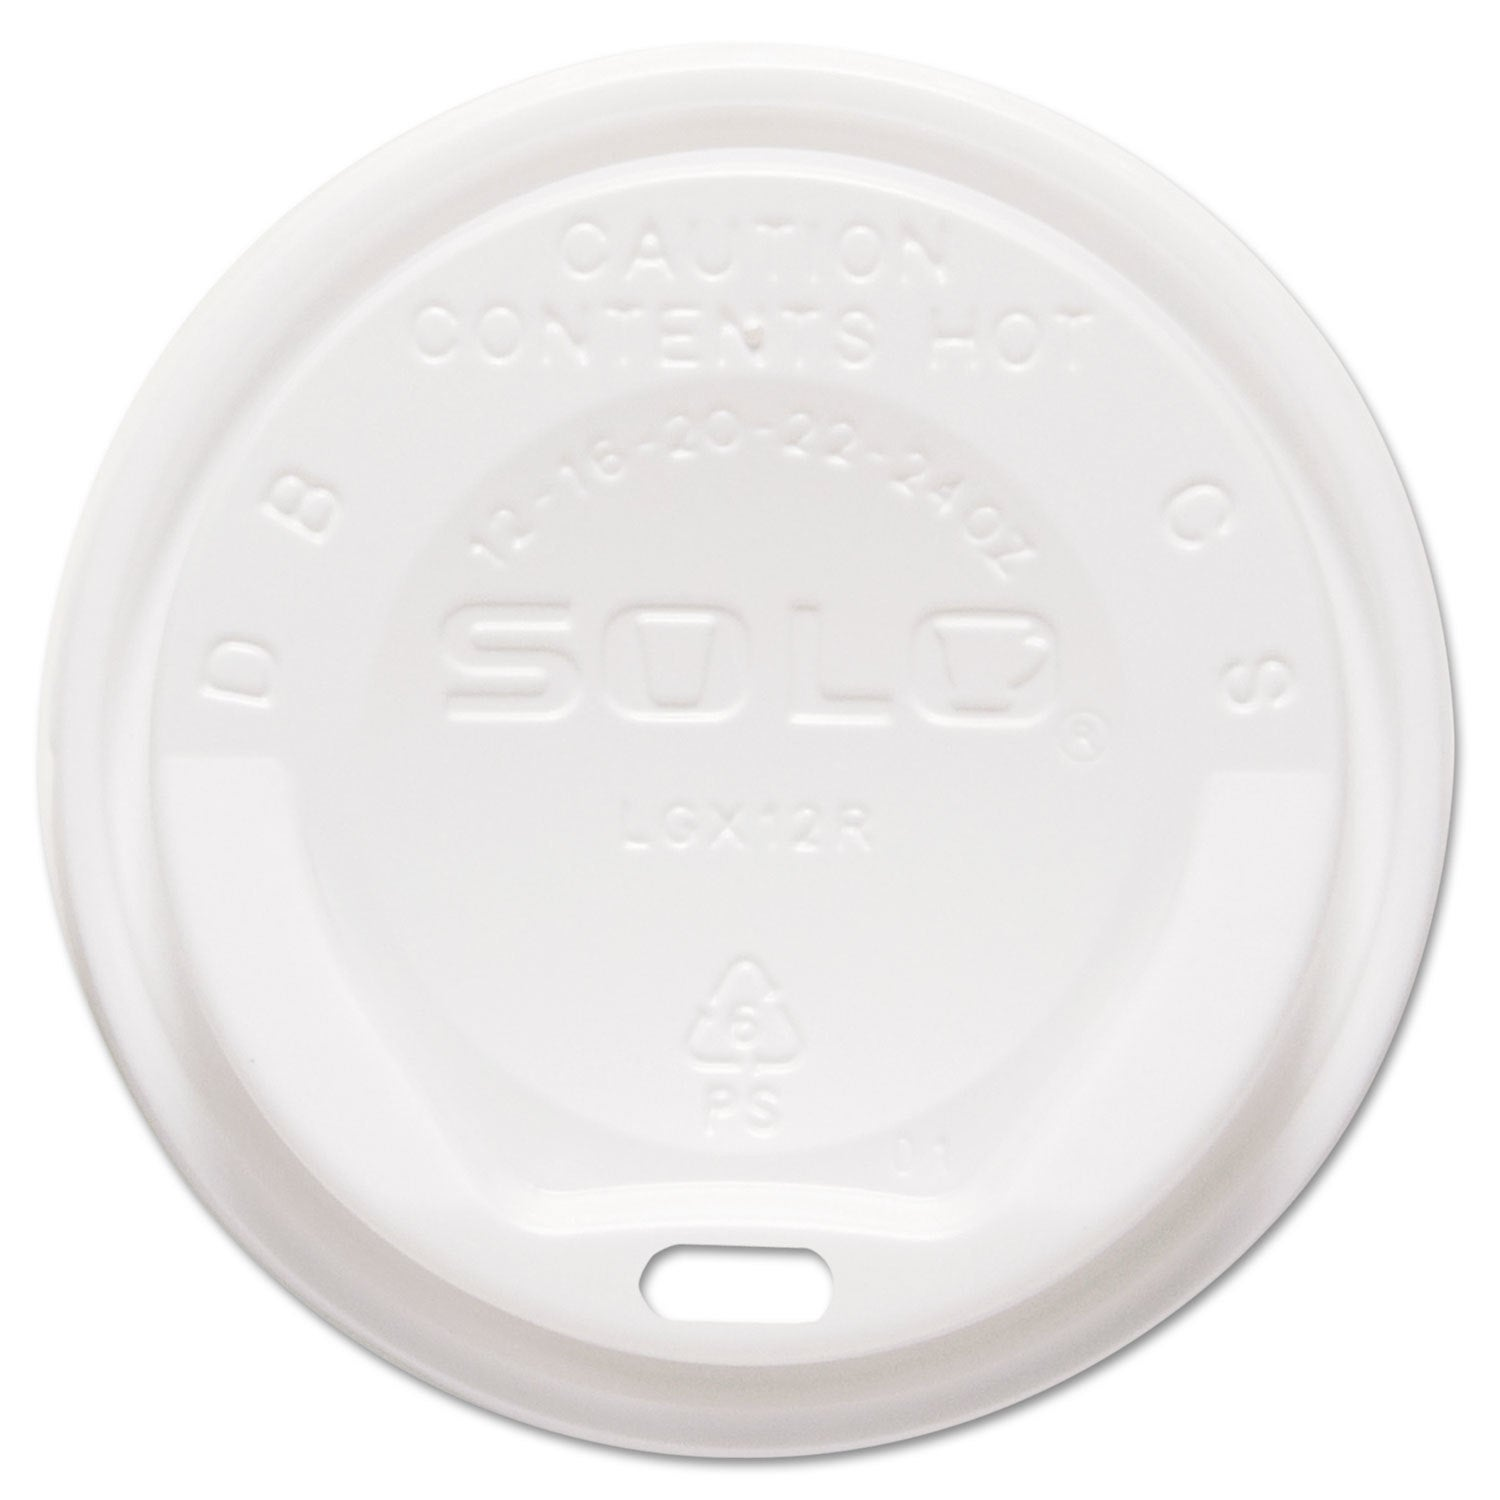 Solo Cup Company Gourmet Hot Cup Lids For Trophy Plus Cup...